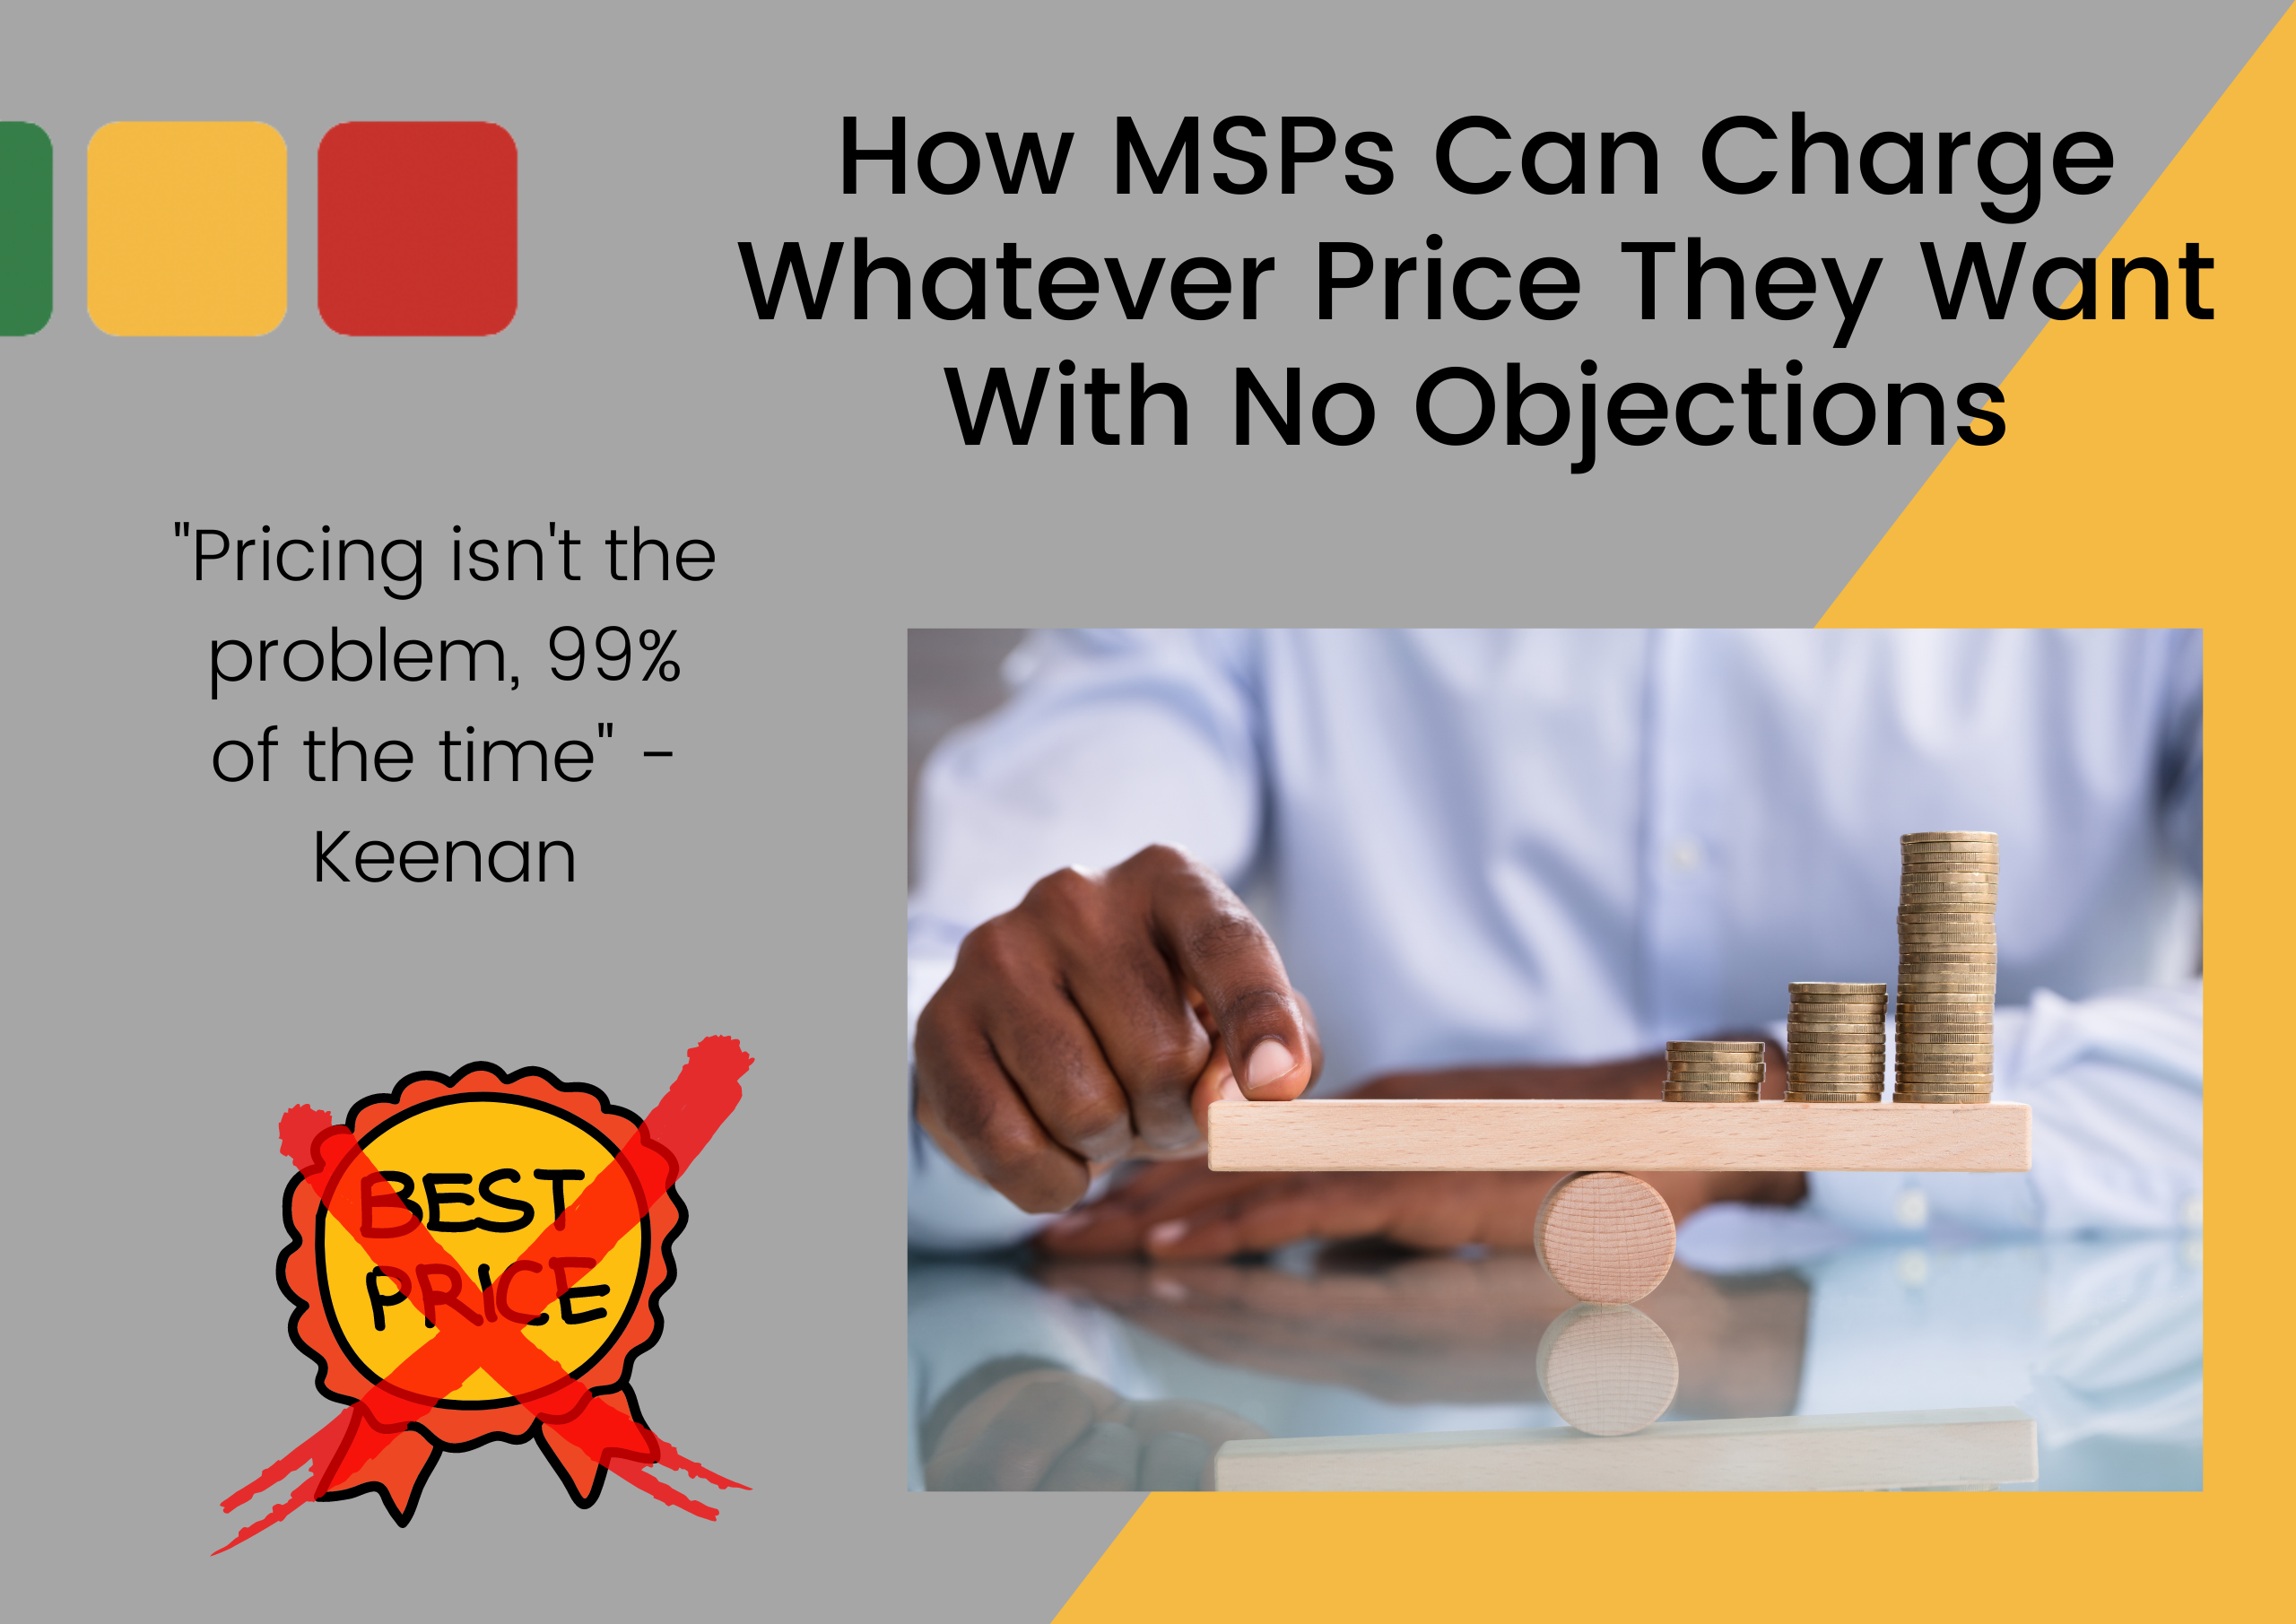 How-MSPs-Can-Charge-Whatever-Price-They-Want-With-No-Objections-2560x1811-1